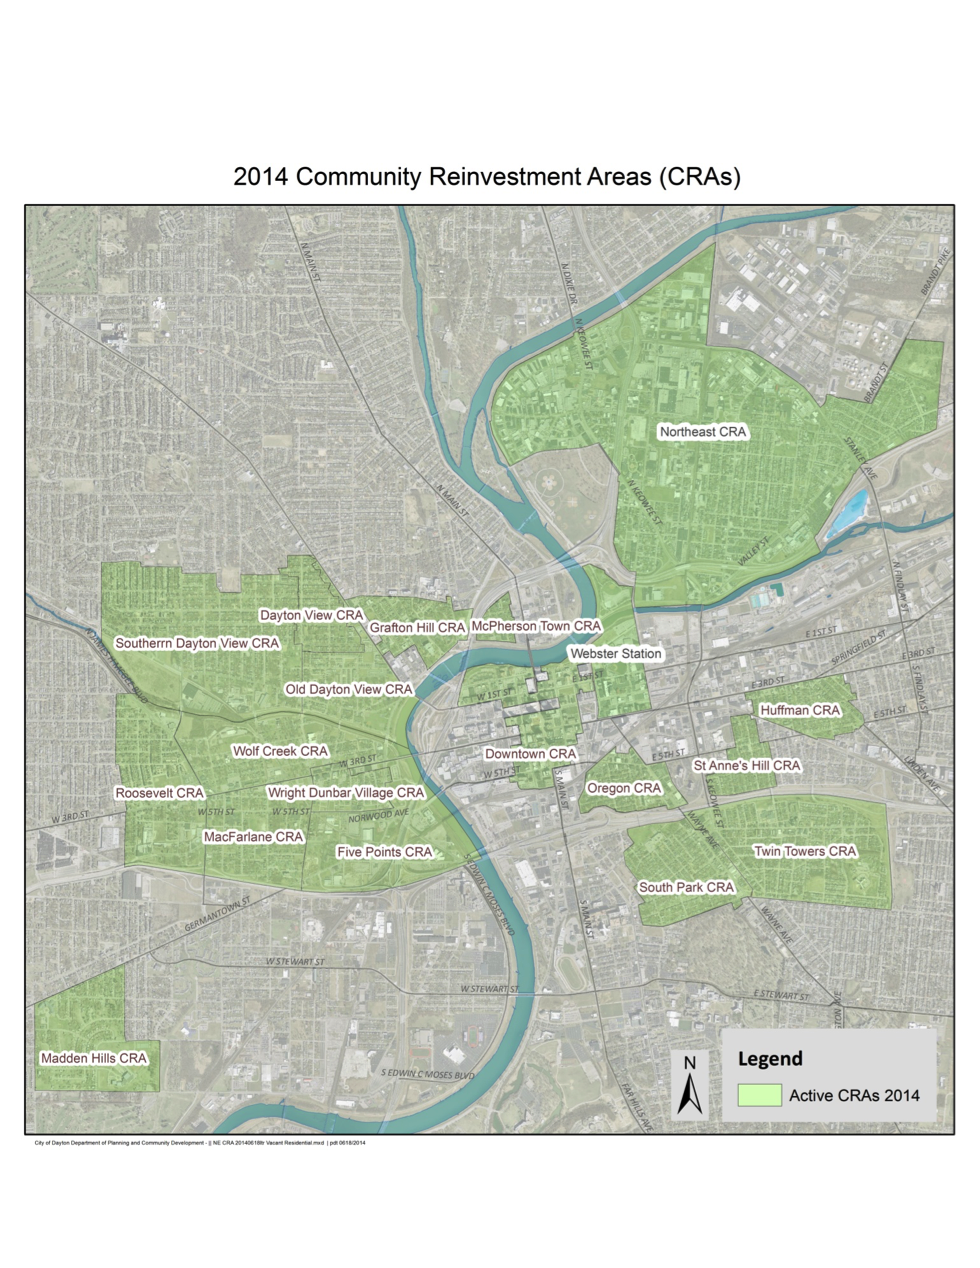 More information about Dayton Community Reinvestment Areas